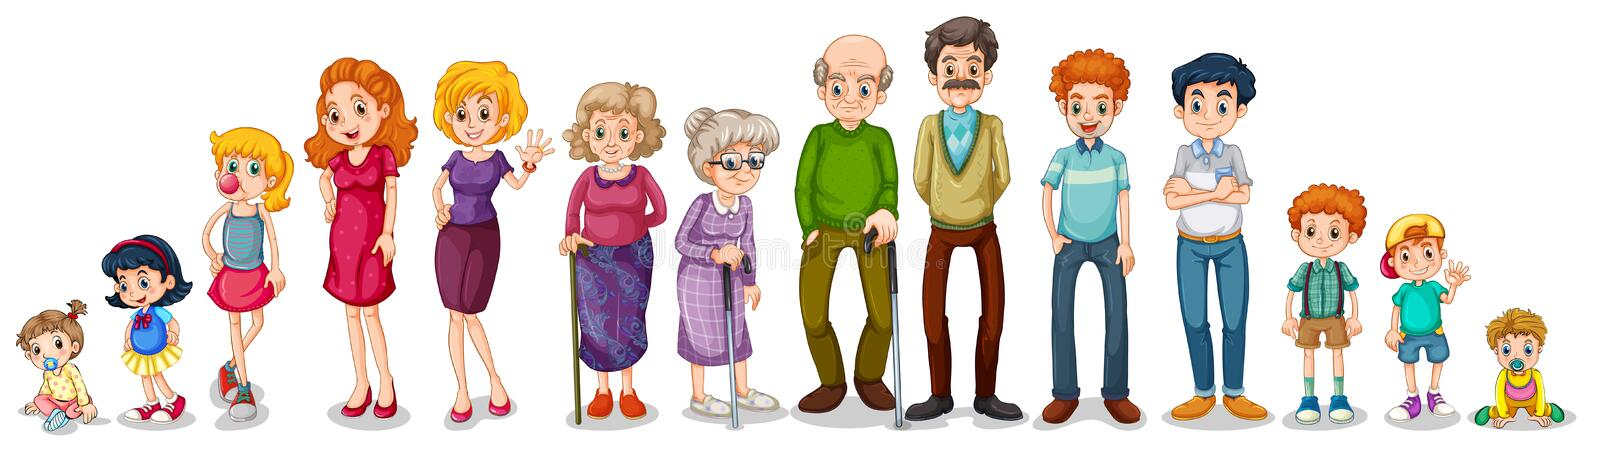 A big extended family vector illustration